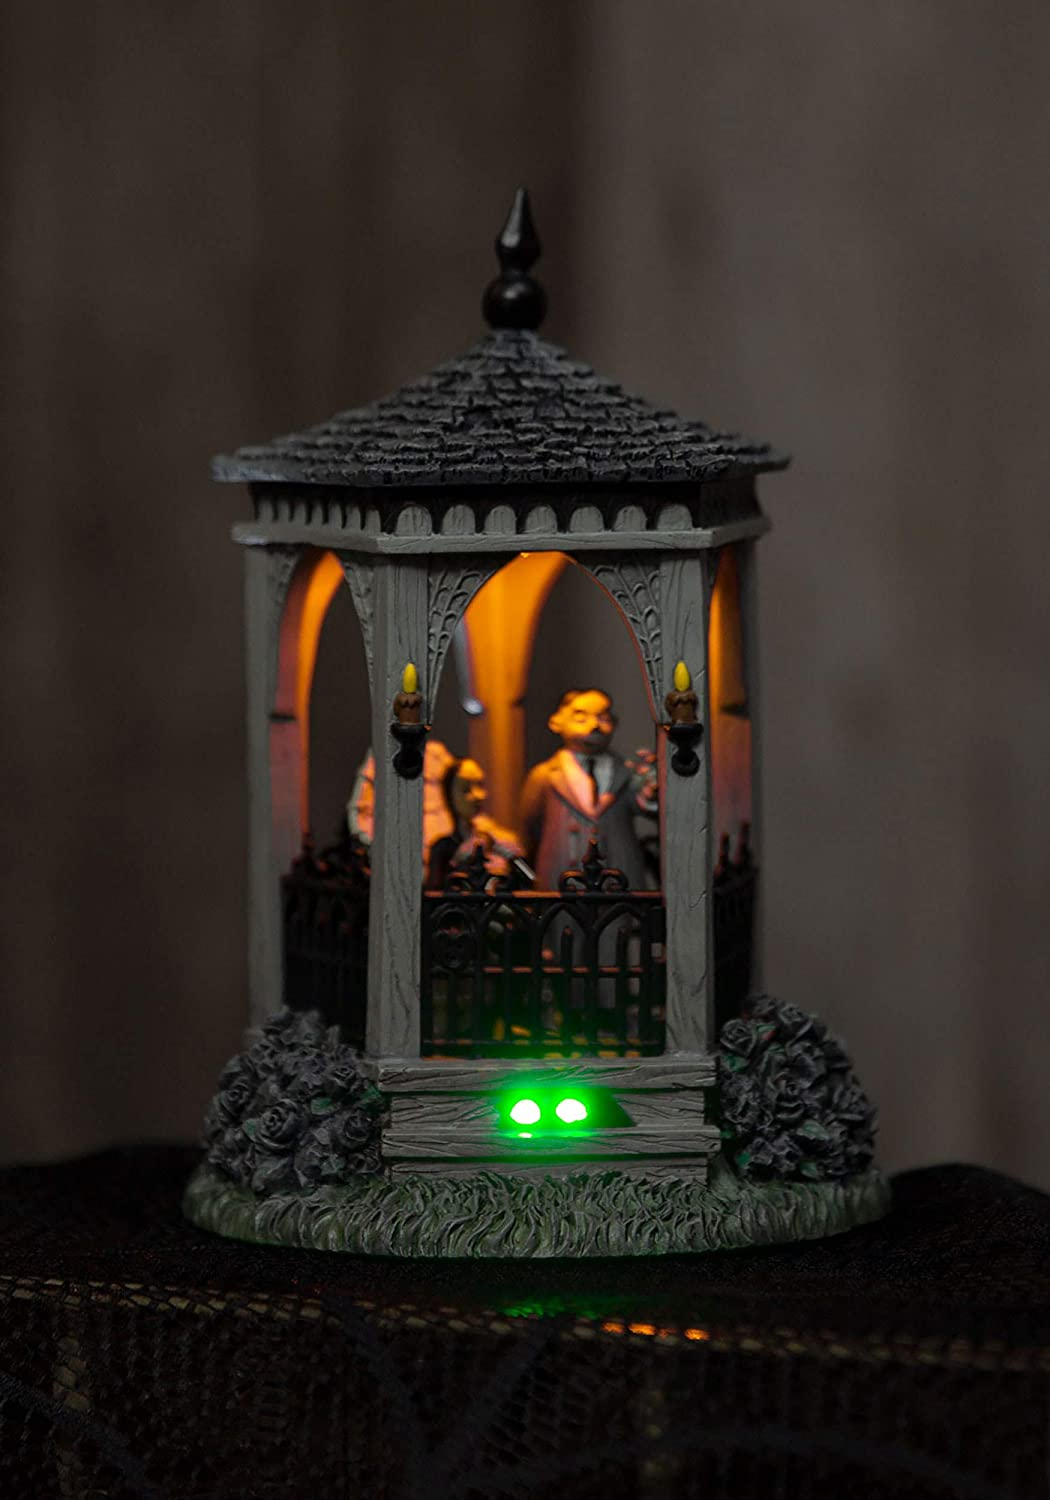 Department 56 The Addams Family Village The Gazebo at Moonlight Lighted Building